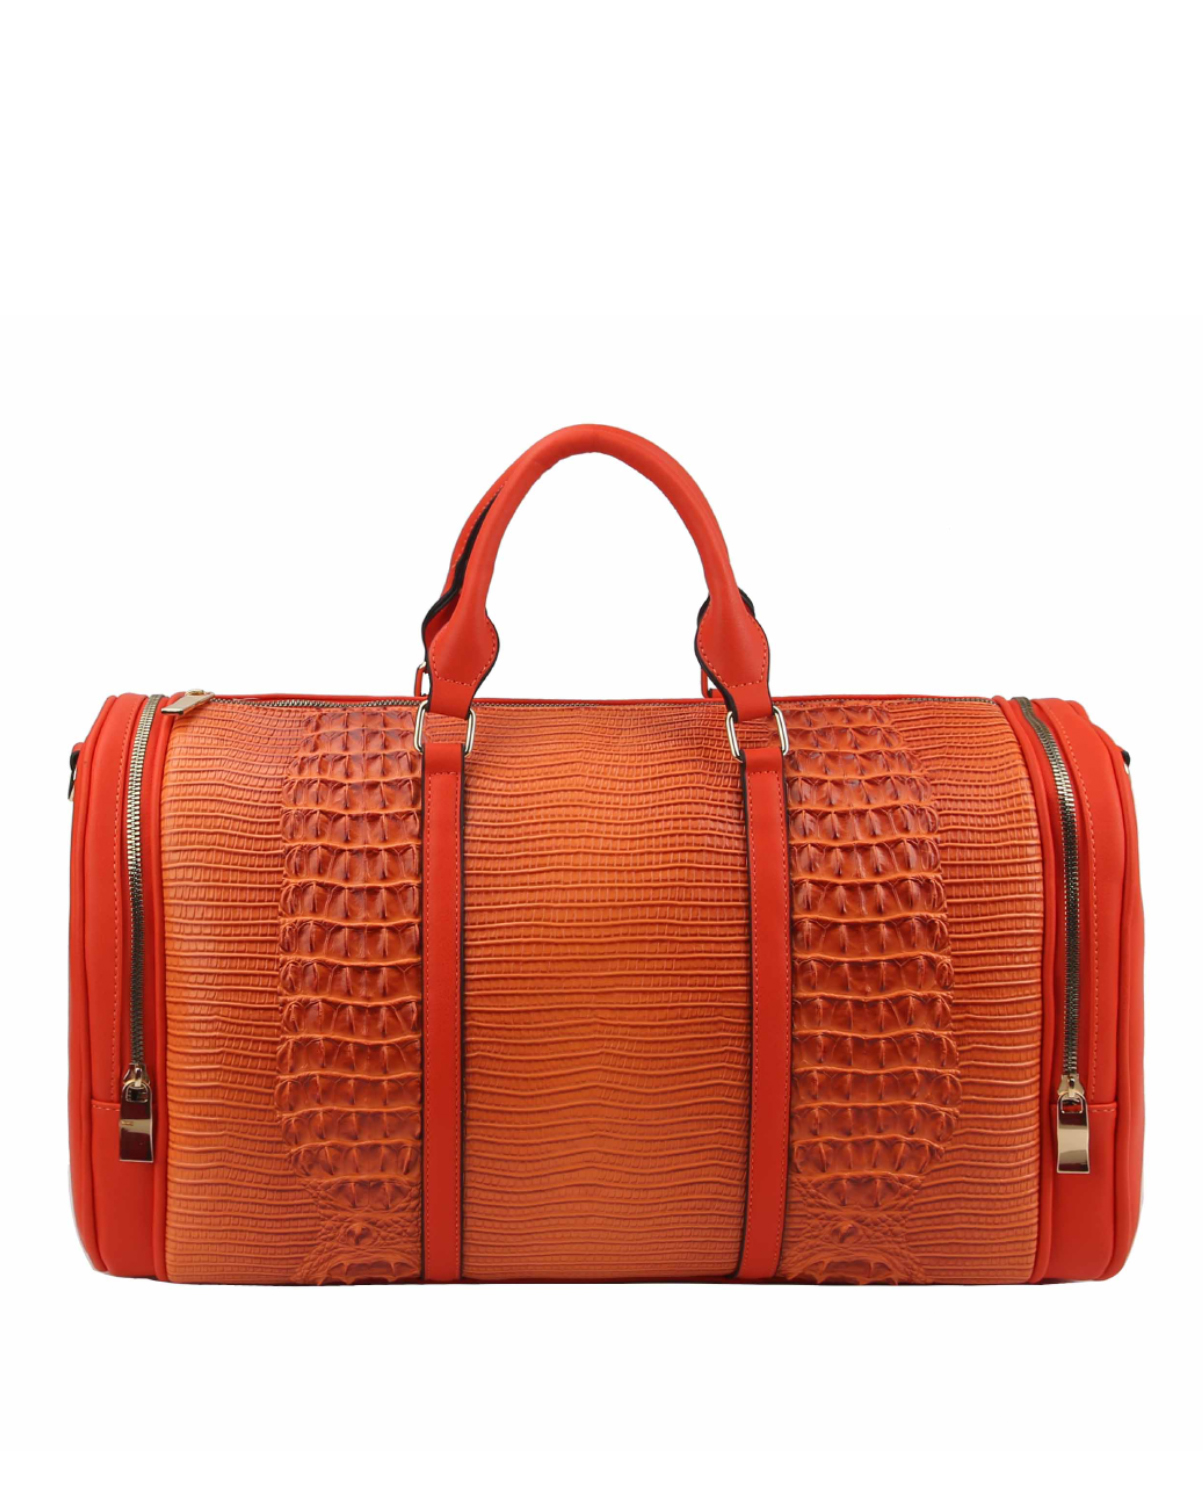 LHU308(OR)-wholesale-duffle-bag-set-pouch-alligator-ostrich-leatherette-luggage-tag-double-zipper-travel-(0).jpg